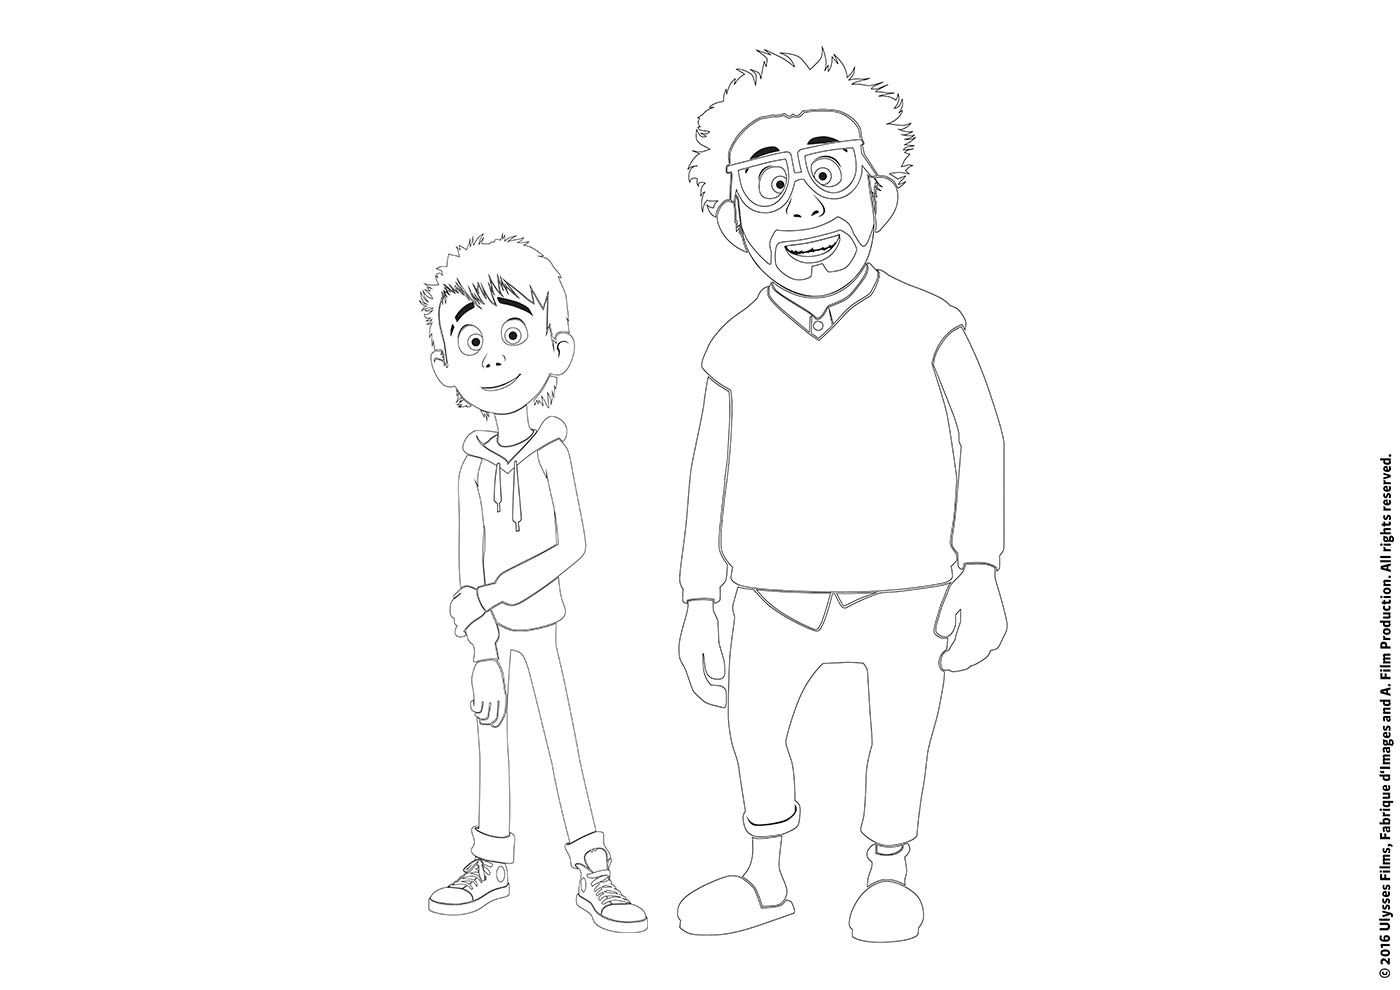 Luis and the Aliens Colouring Sheet